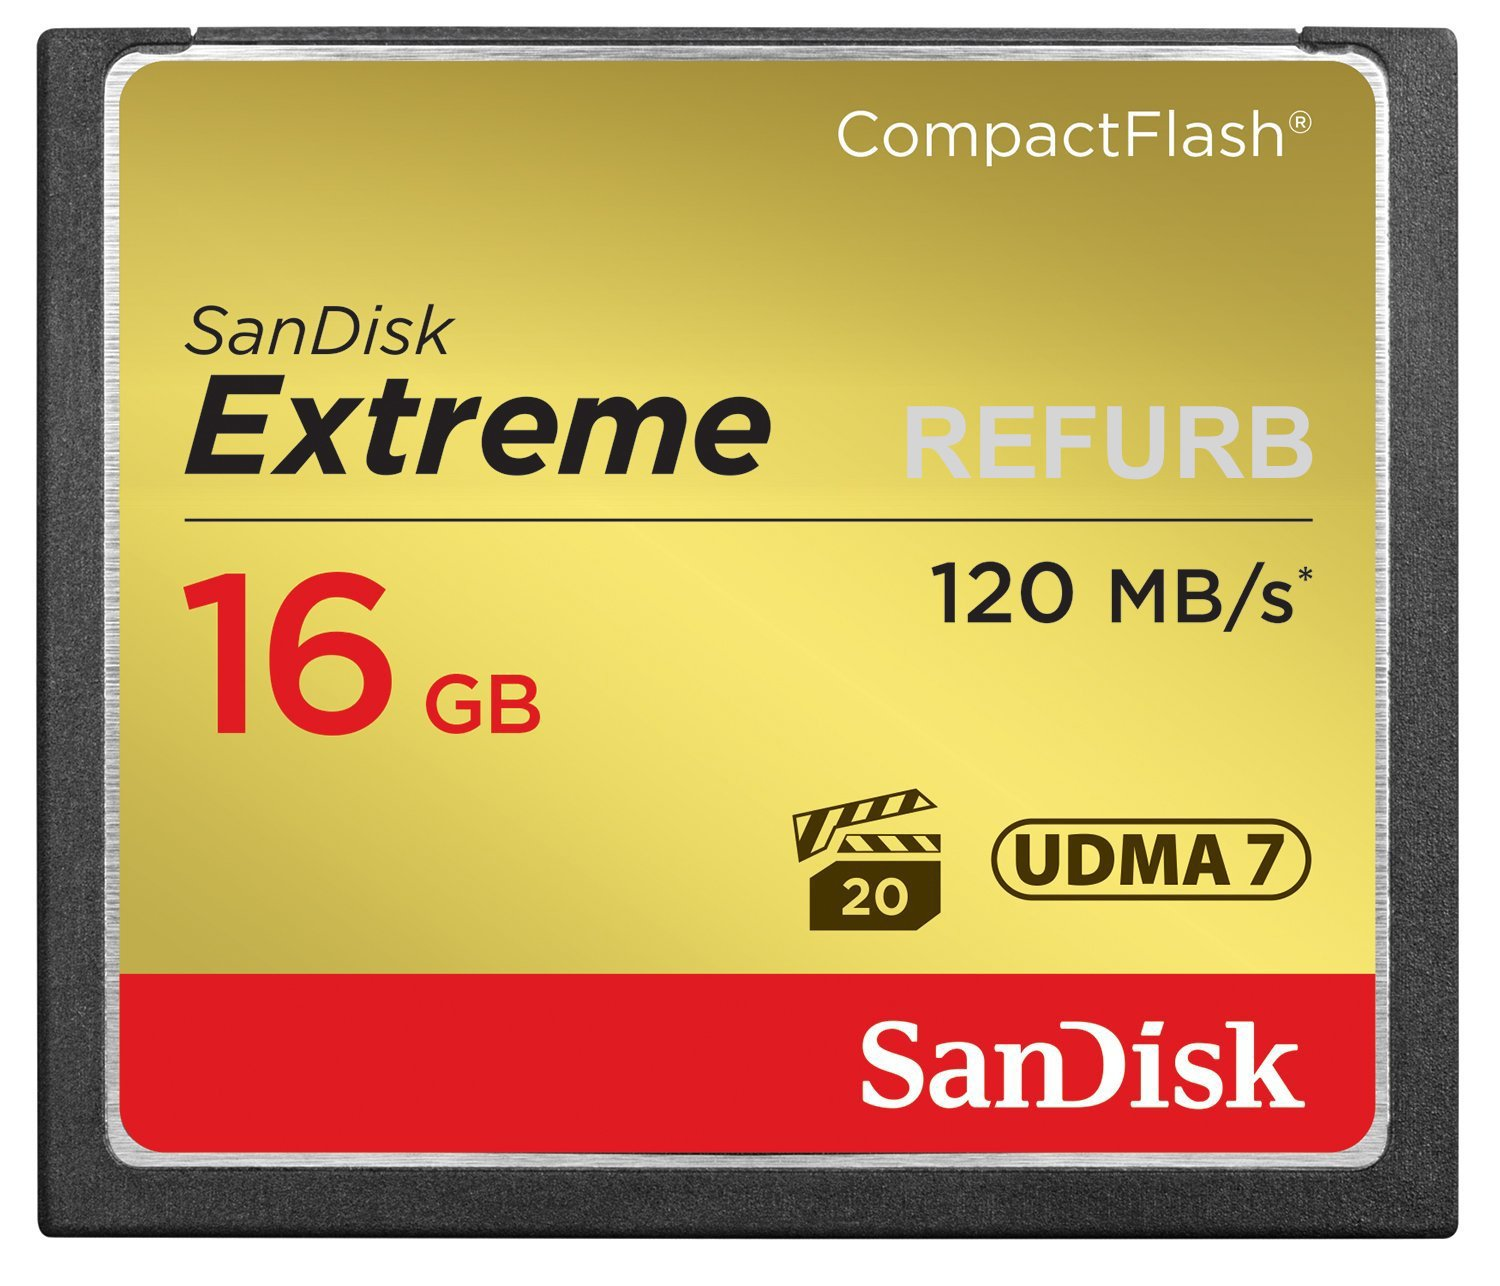 SanDisk Extreme 16GB CompactFlash Memory Card UDMA 7 Speed Up To 120MB/s-SDCFXS-016G-X46 (Certified Refurbished)